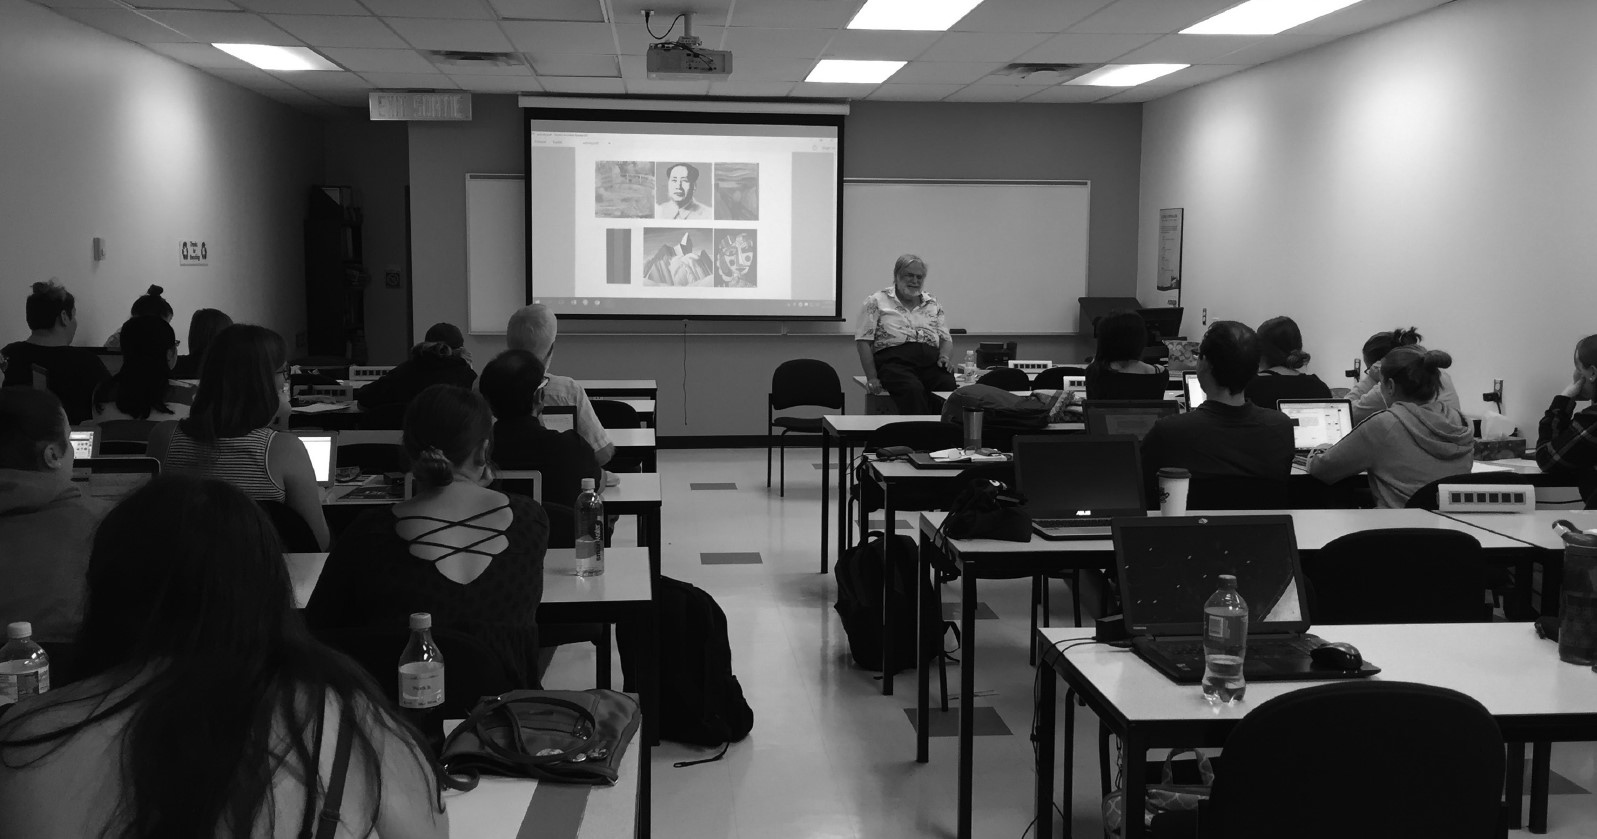 OHS Volunteer John Rae delivers an annual guest lecture to the students of Algonquin College's Museum Studies Program. John's expertise on accessibility practices in the public sphere, specifically in the heritage sector, make his lectures a great benefit to Ontario's museum studies students.